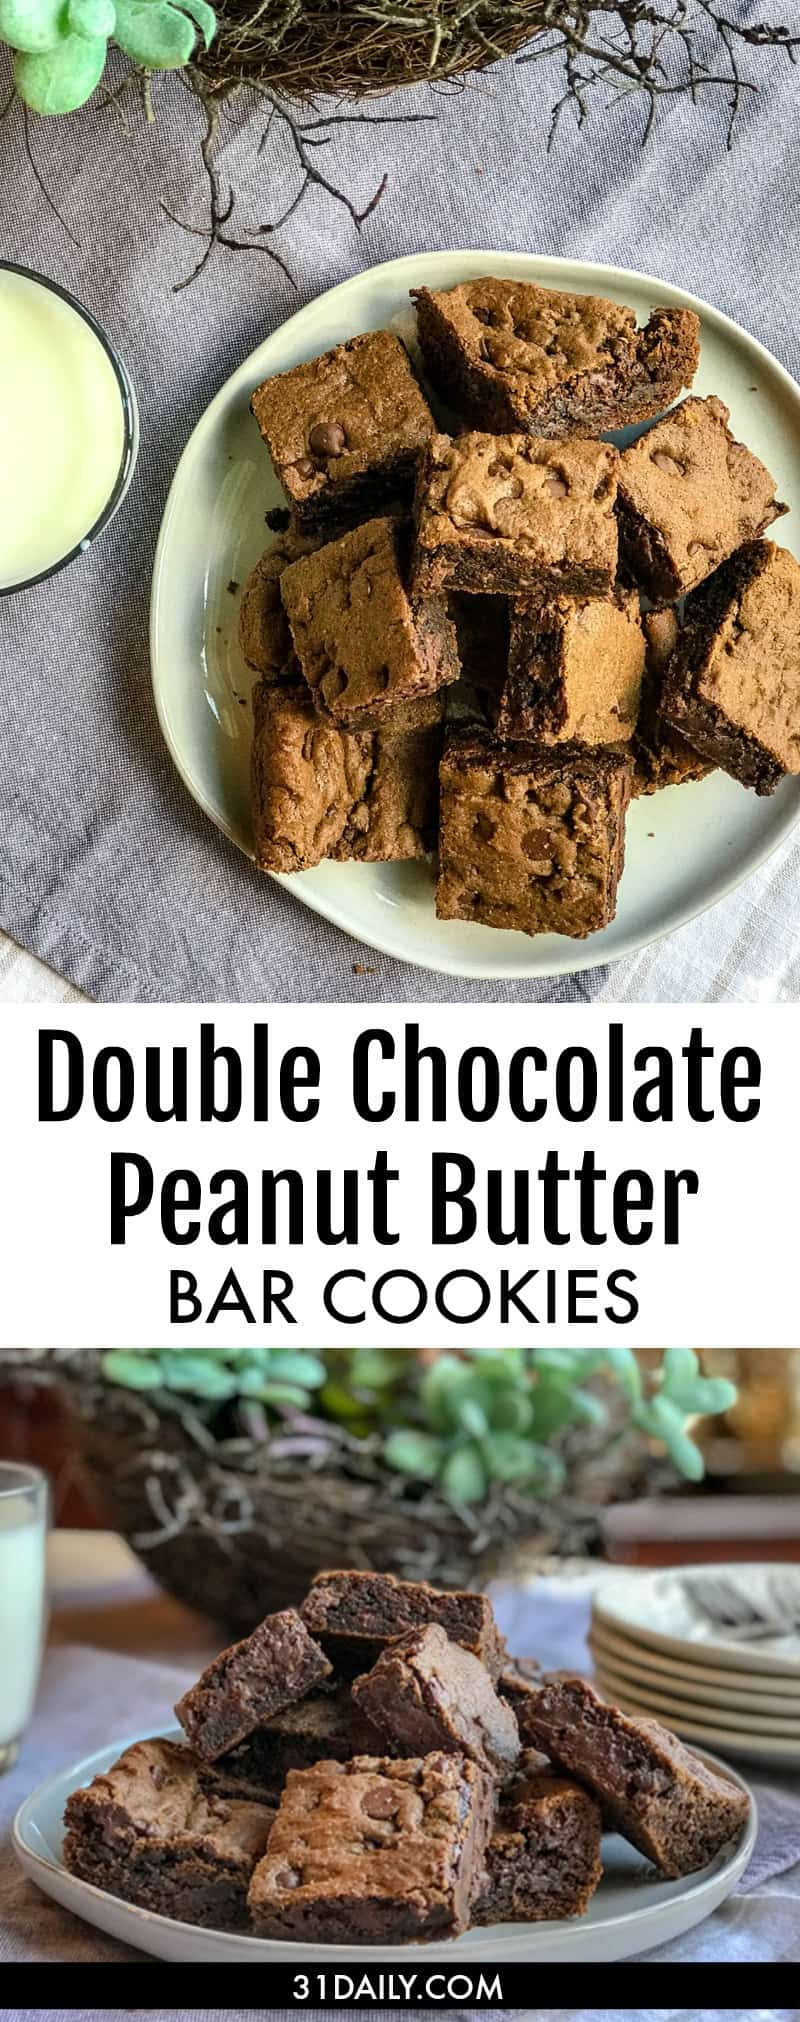 Double Chocolate Peanut Butter Cookie Bars | 31Daily.com